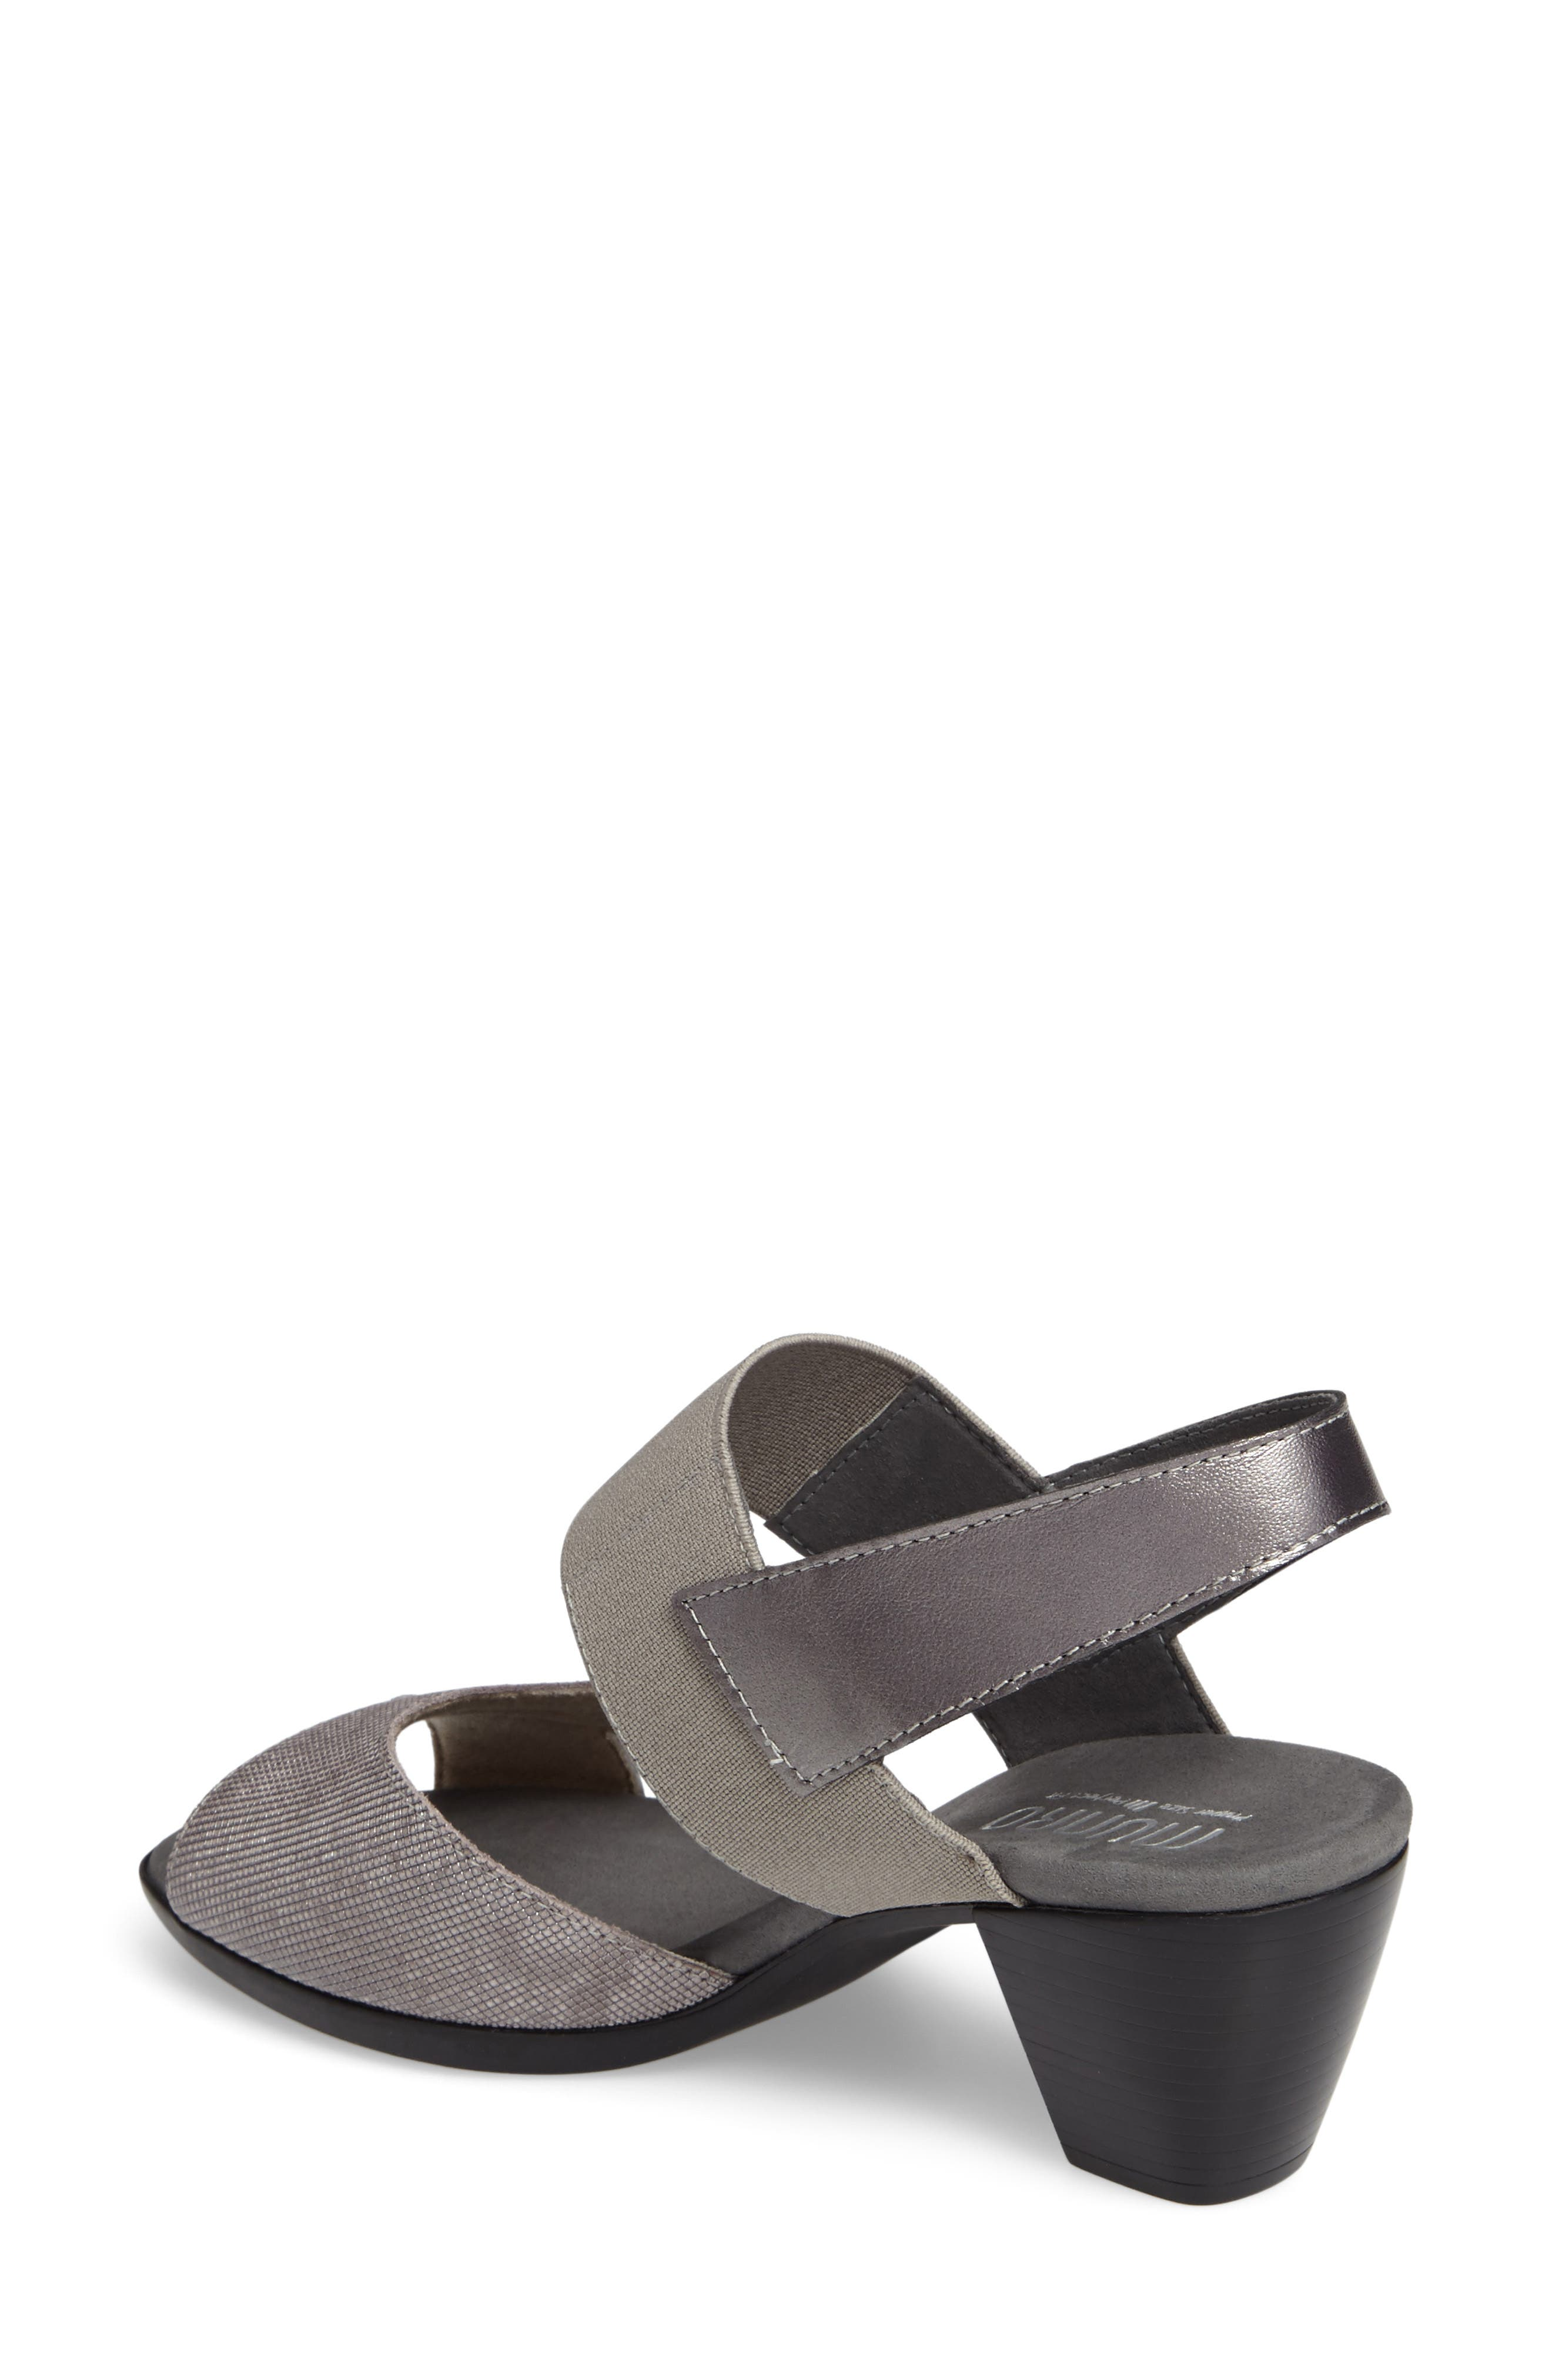 Darling Mixed Finish Slingback Sandal,                             Alternate thumbnail 2, color,                             Pewter Leather